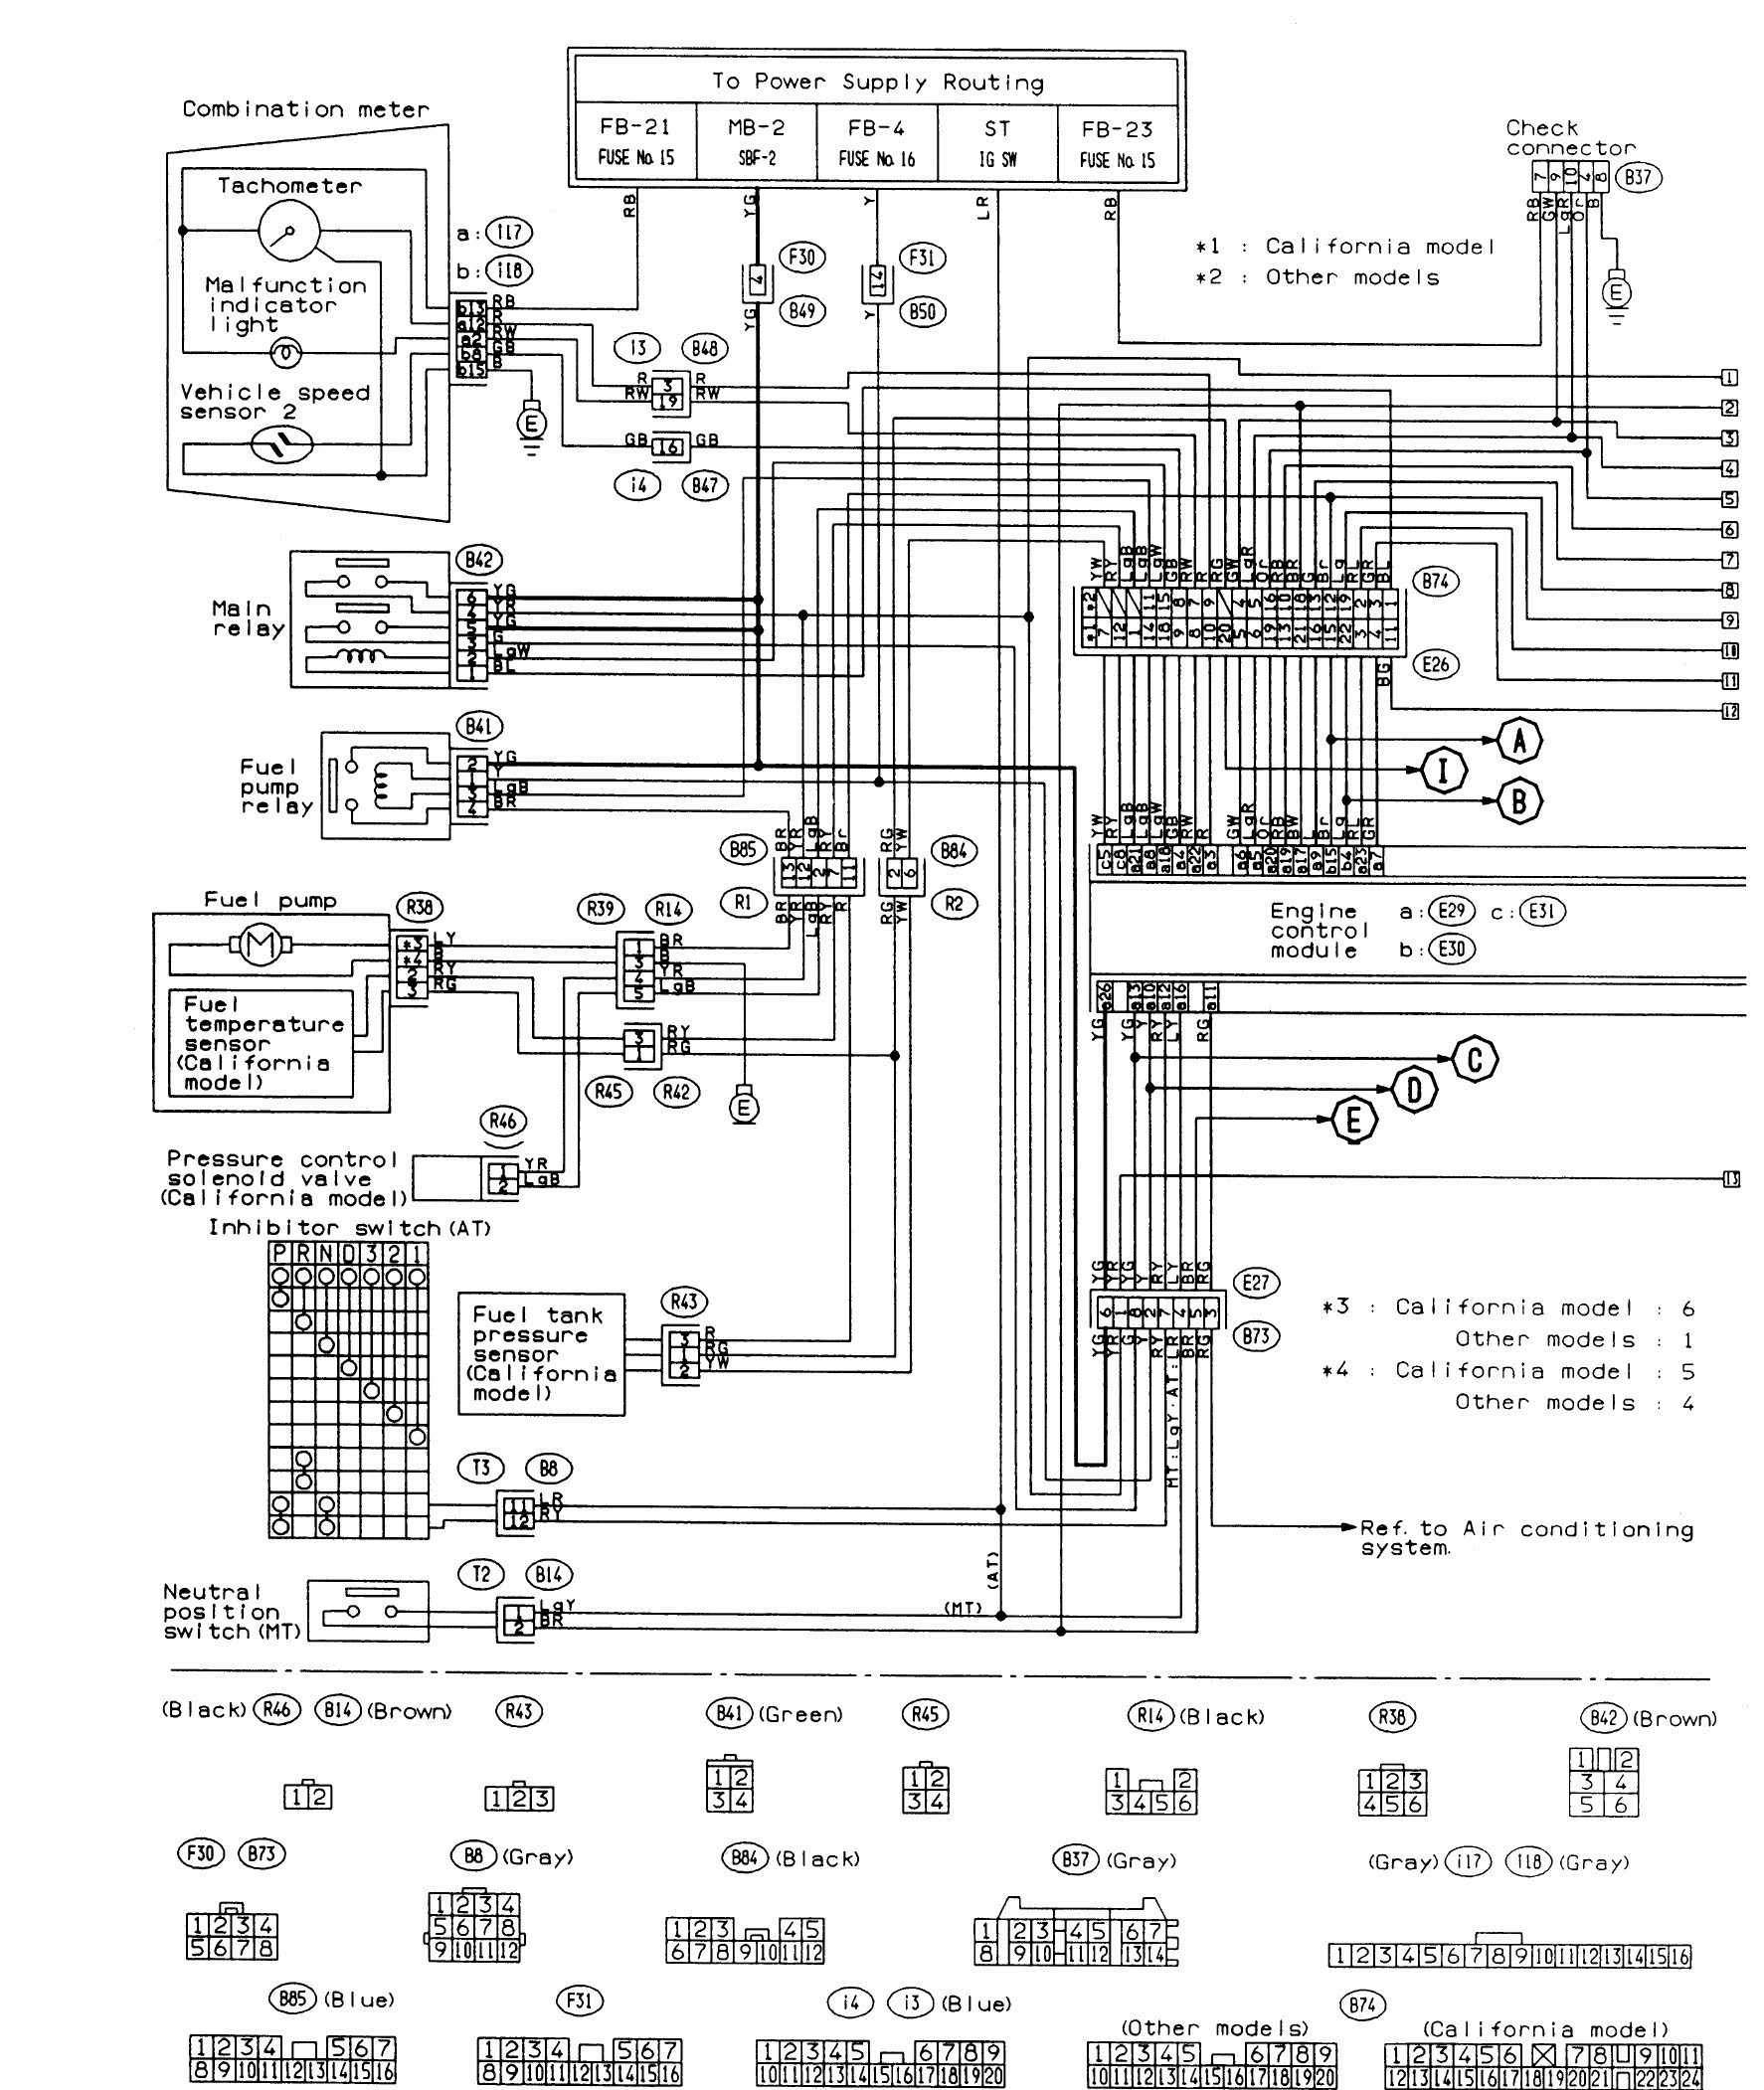 2002 subaru forester stereo wiring diagram clarion car engine my